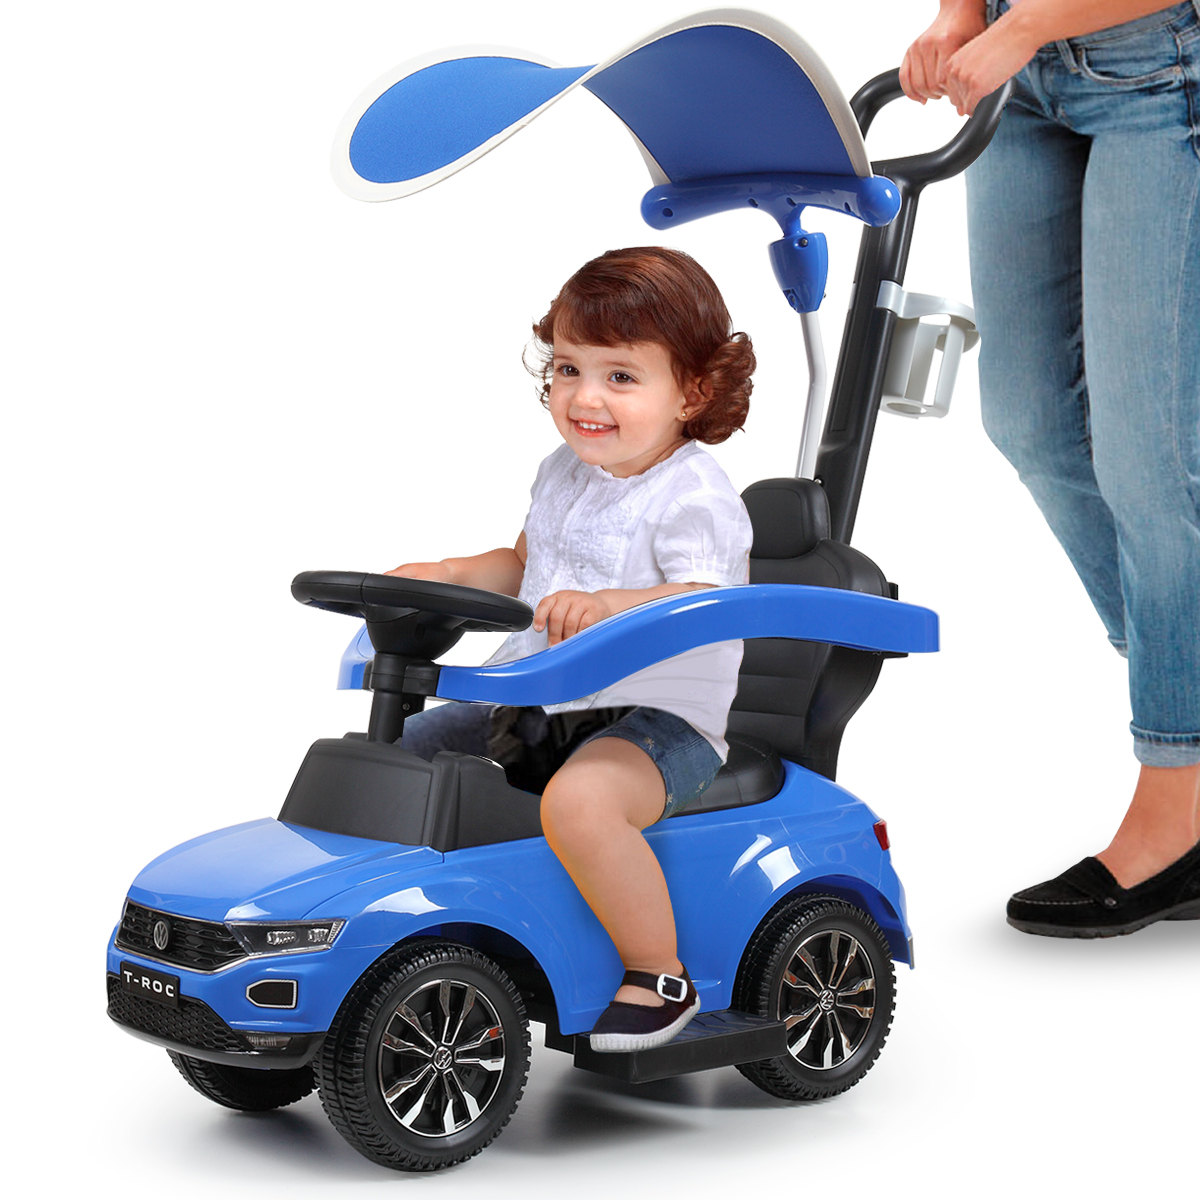 Jaxpety Kids Ride On Push Car Portable 3 in 1 Riding Push ...